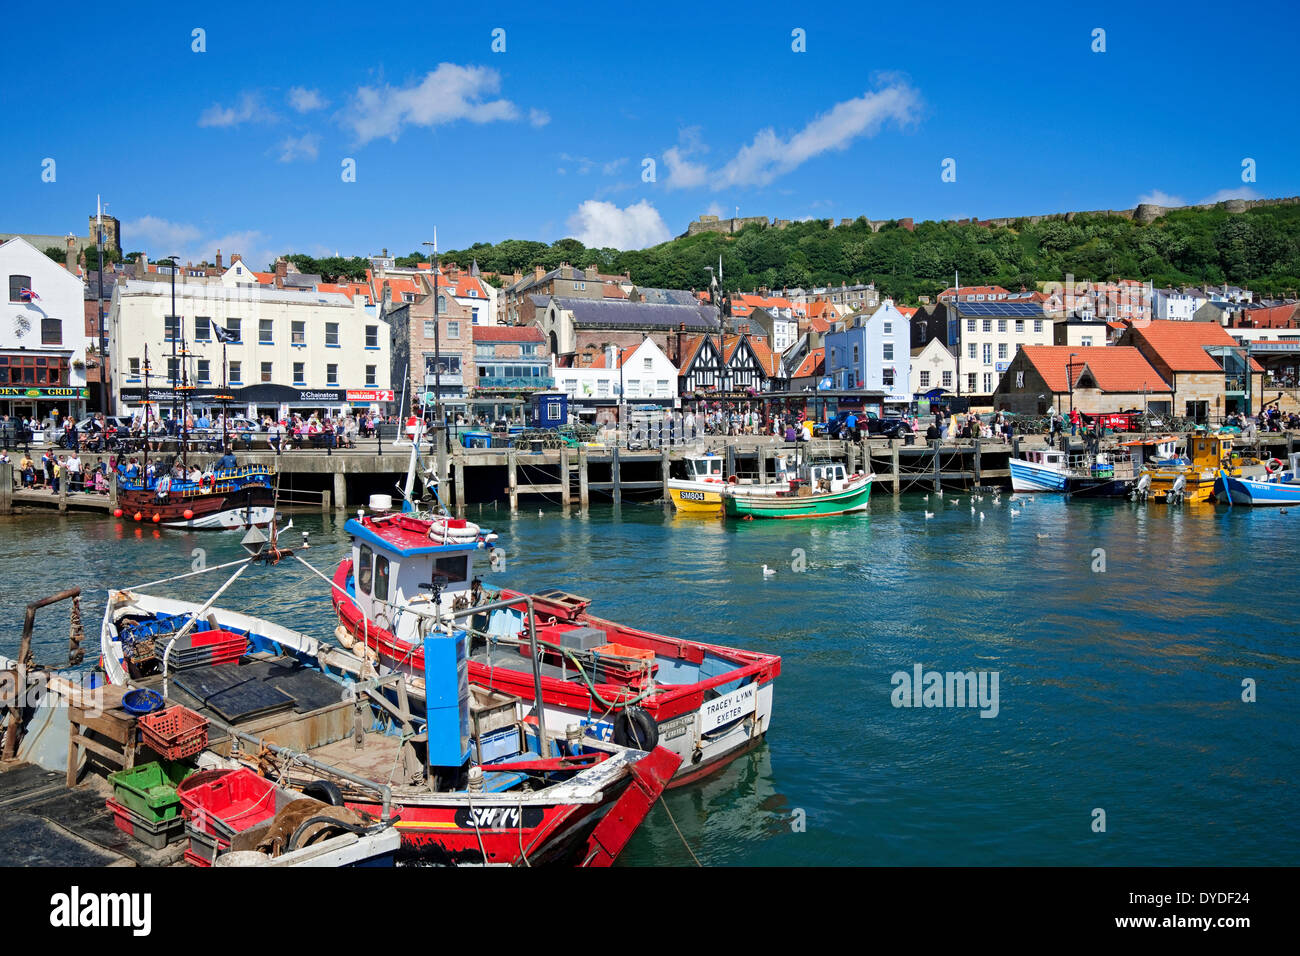 Fishing boats in the harbour at Scarborough. - Stock Image